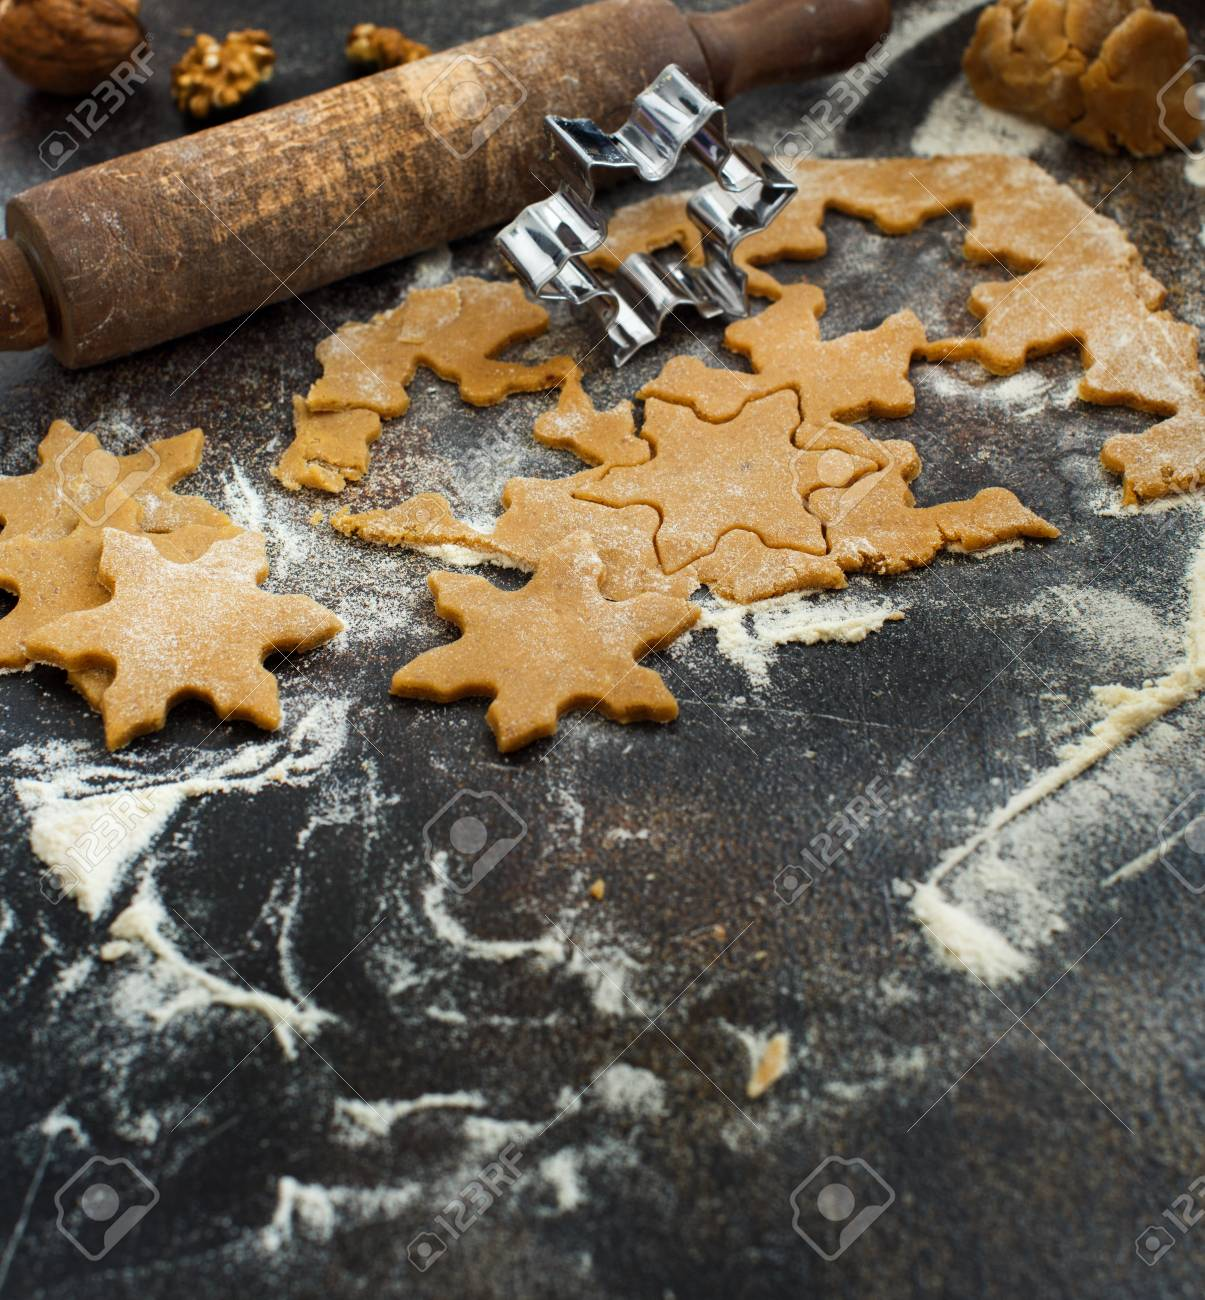 Cooking Christmas Cookies With Snowflake Cookie Cutters On A